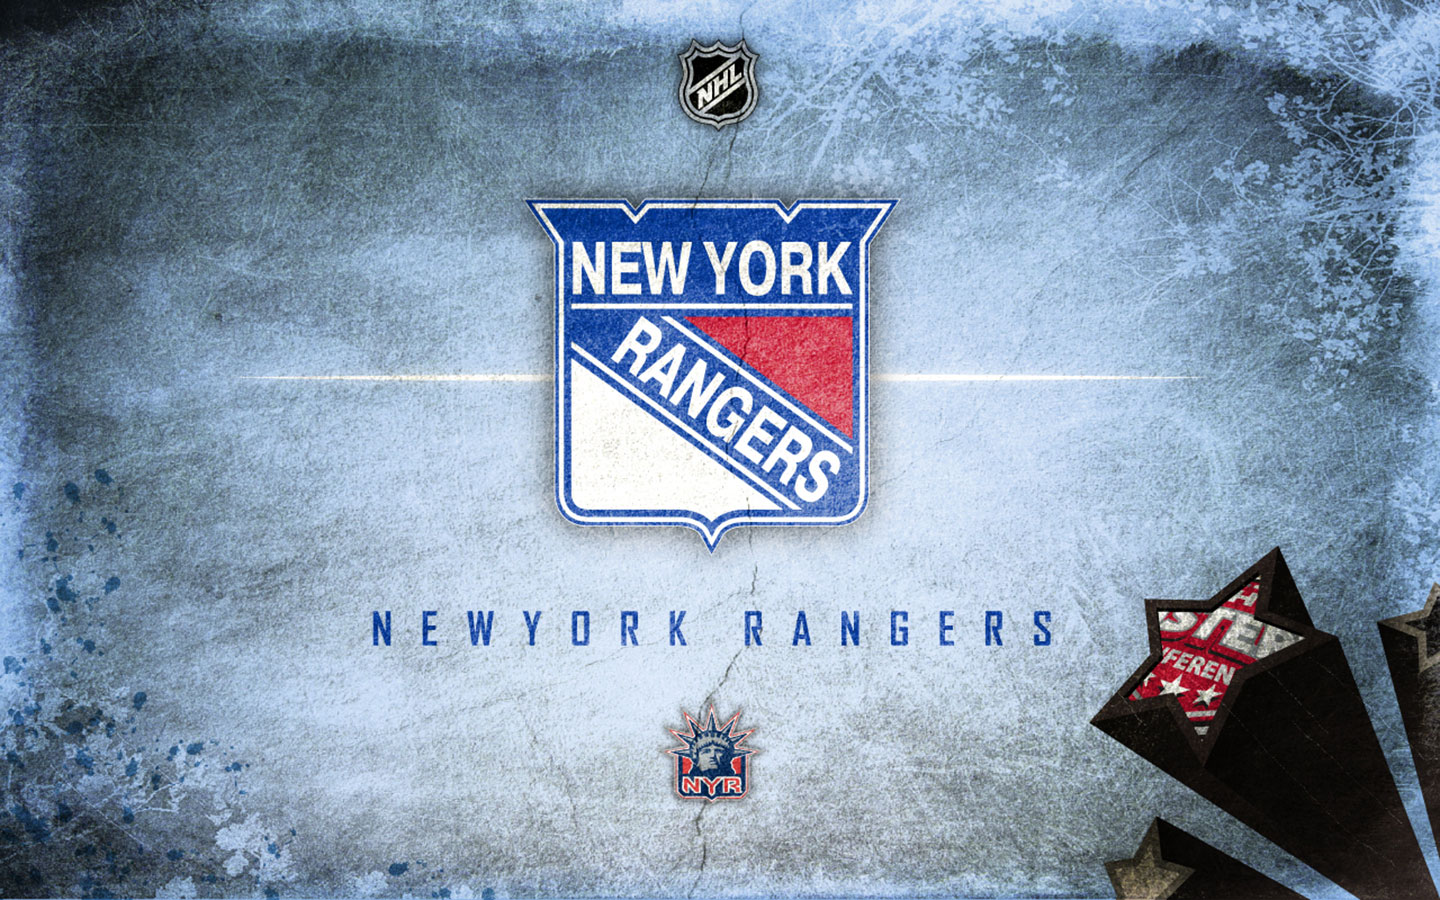 And here, even more information about New York Rangers!